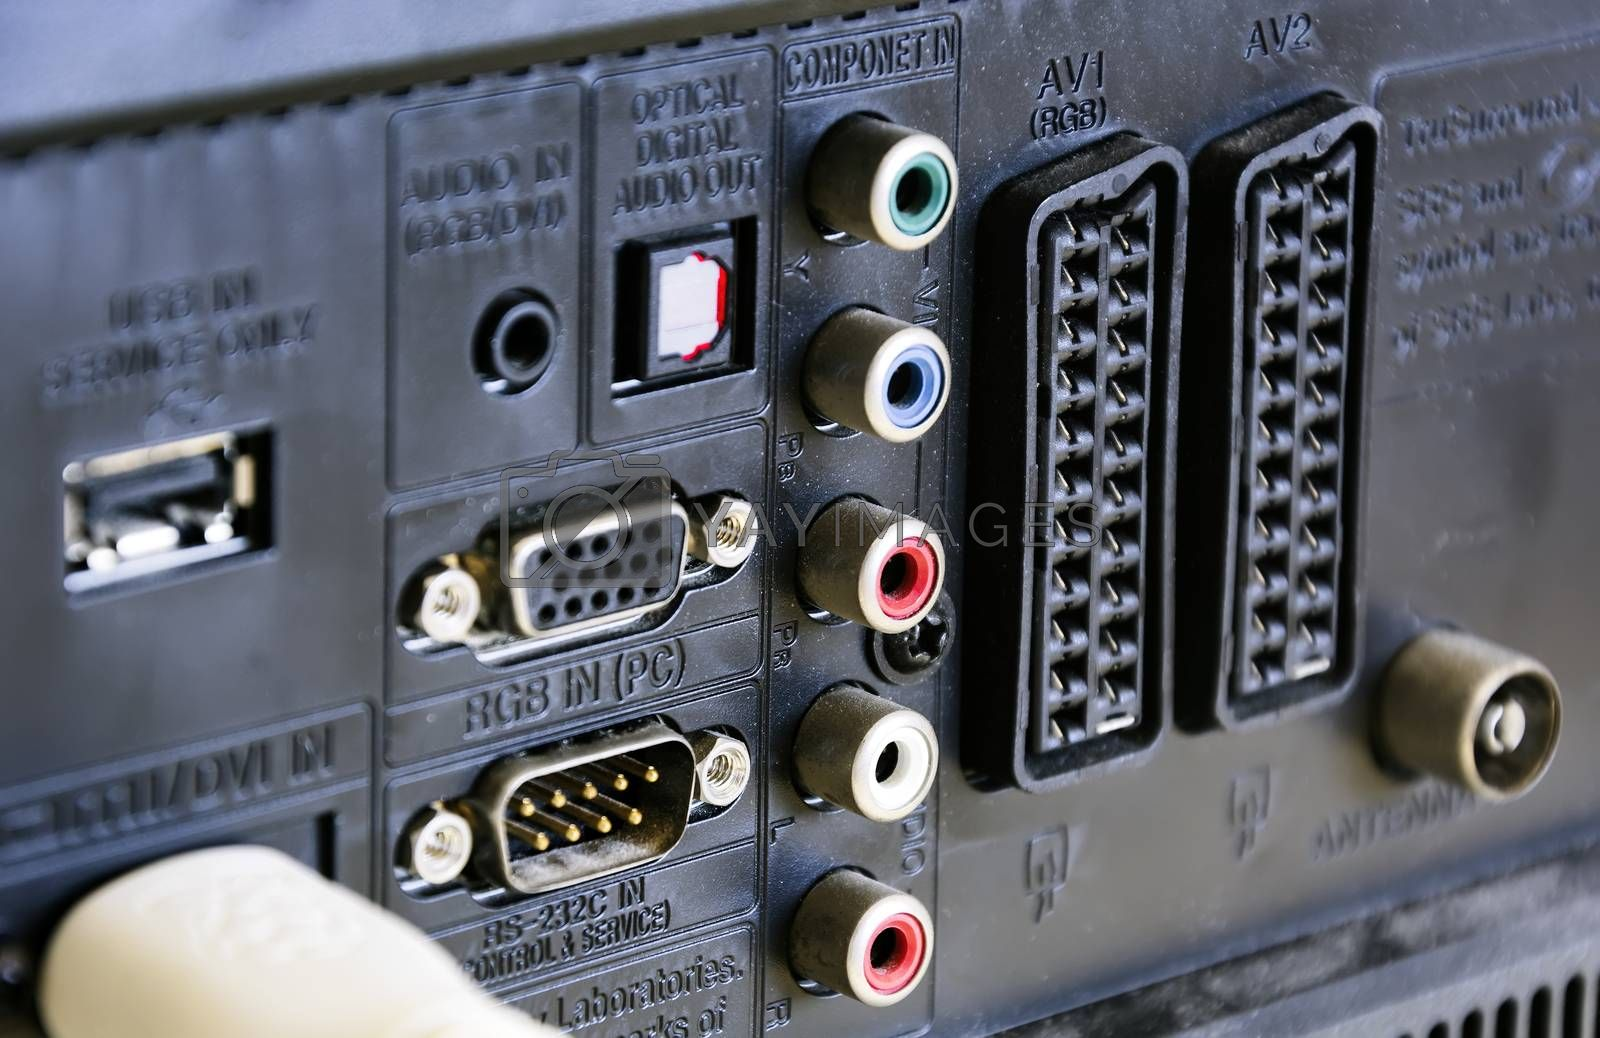 Rear panel of a television with sockets for audio / video, scart connections and for rgb video input for the monitor. Technology and connections between devices